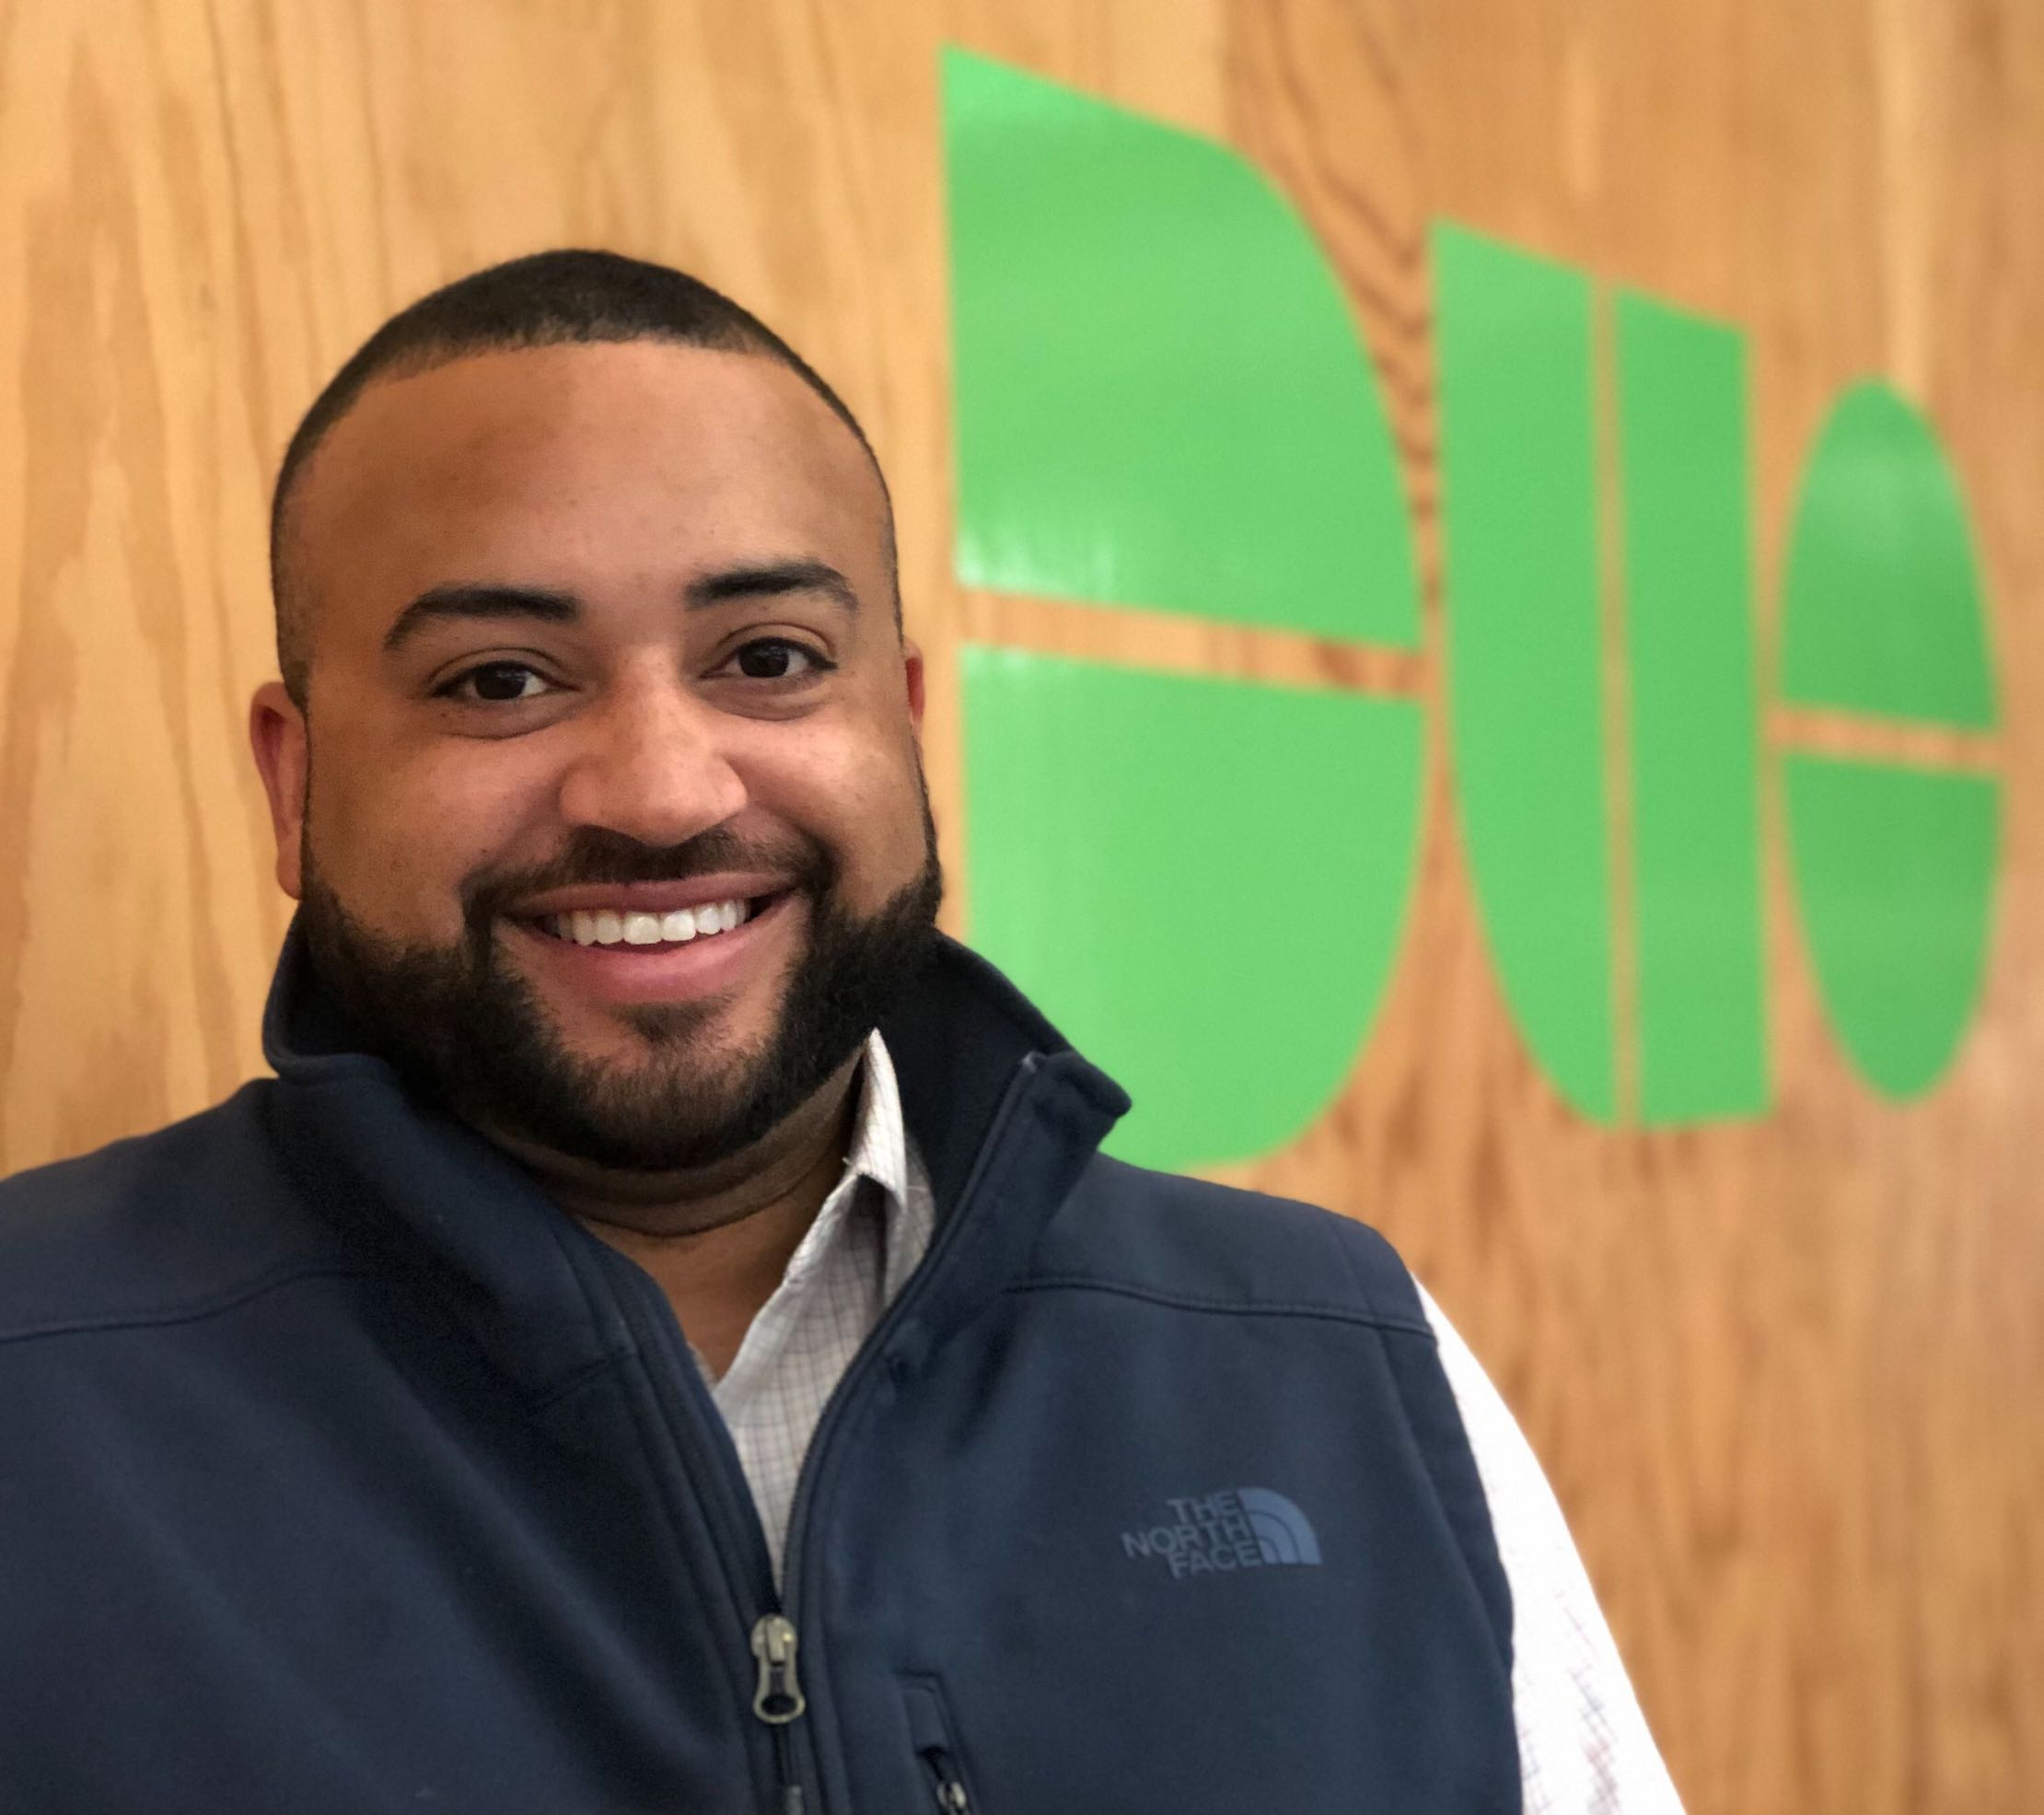 Anthony_Director of Sales SMB (West)